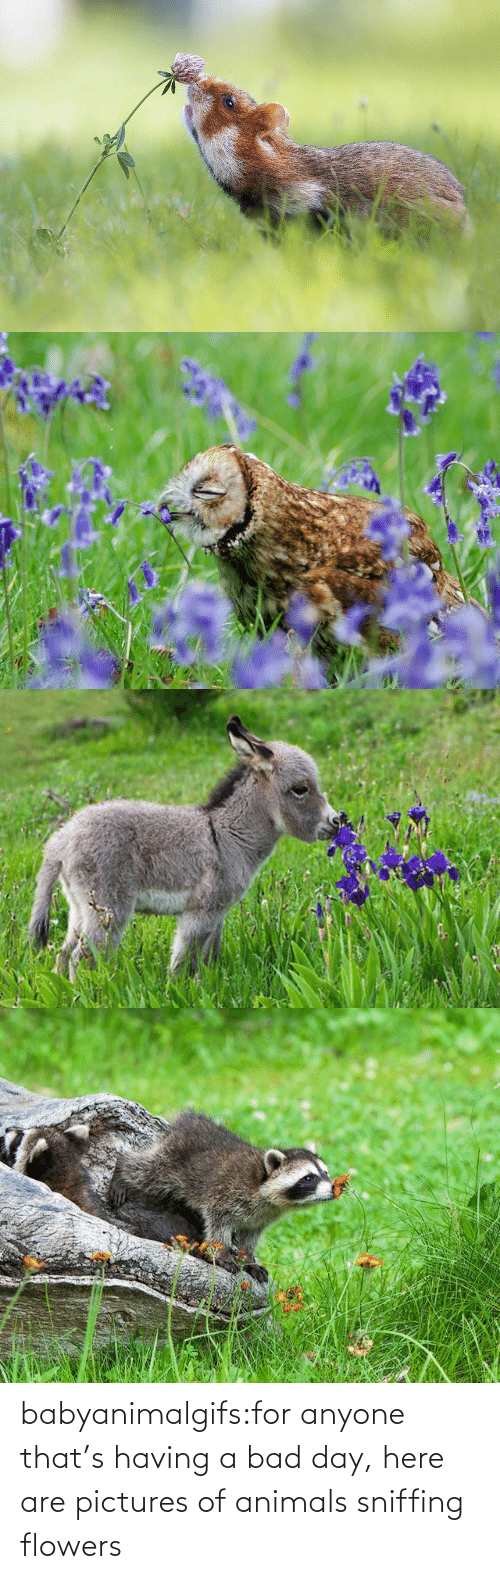 Flowers: babyanimalgifs:for anyone that's having a bad day, here are pictures of animals sniffing flowers